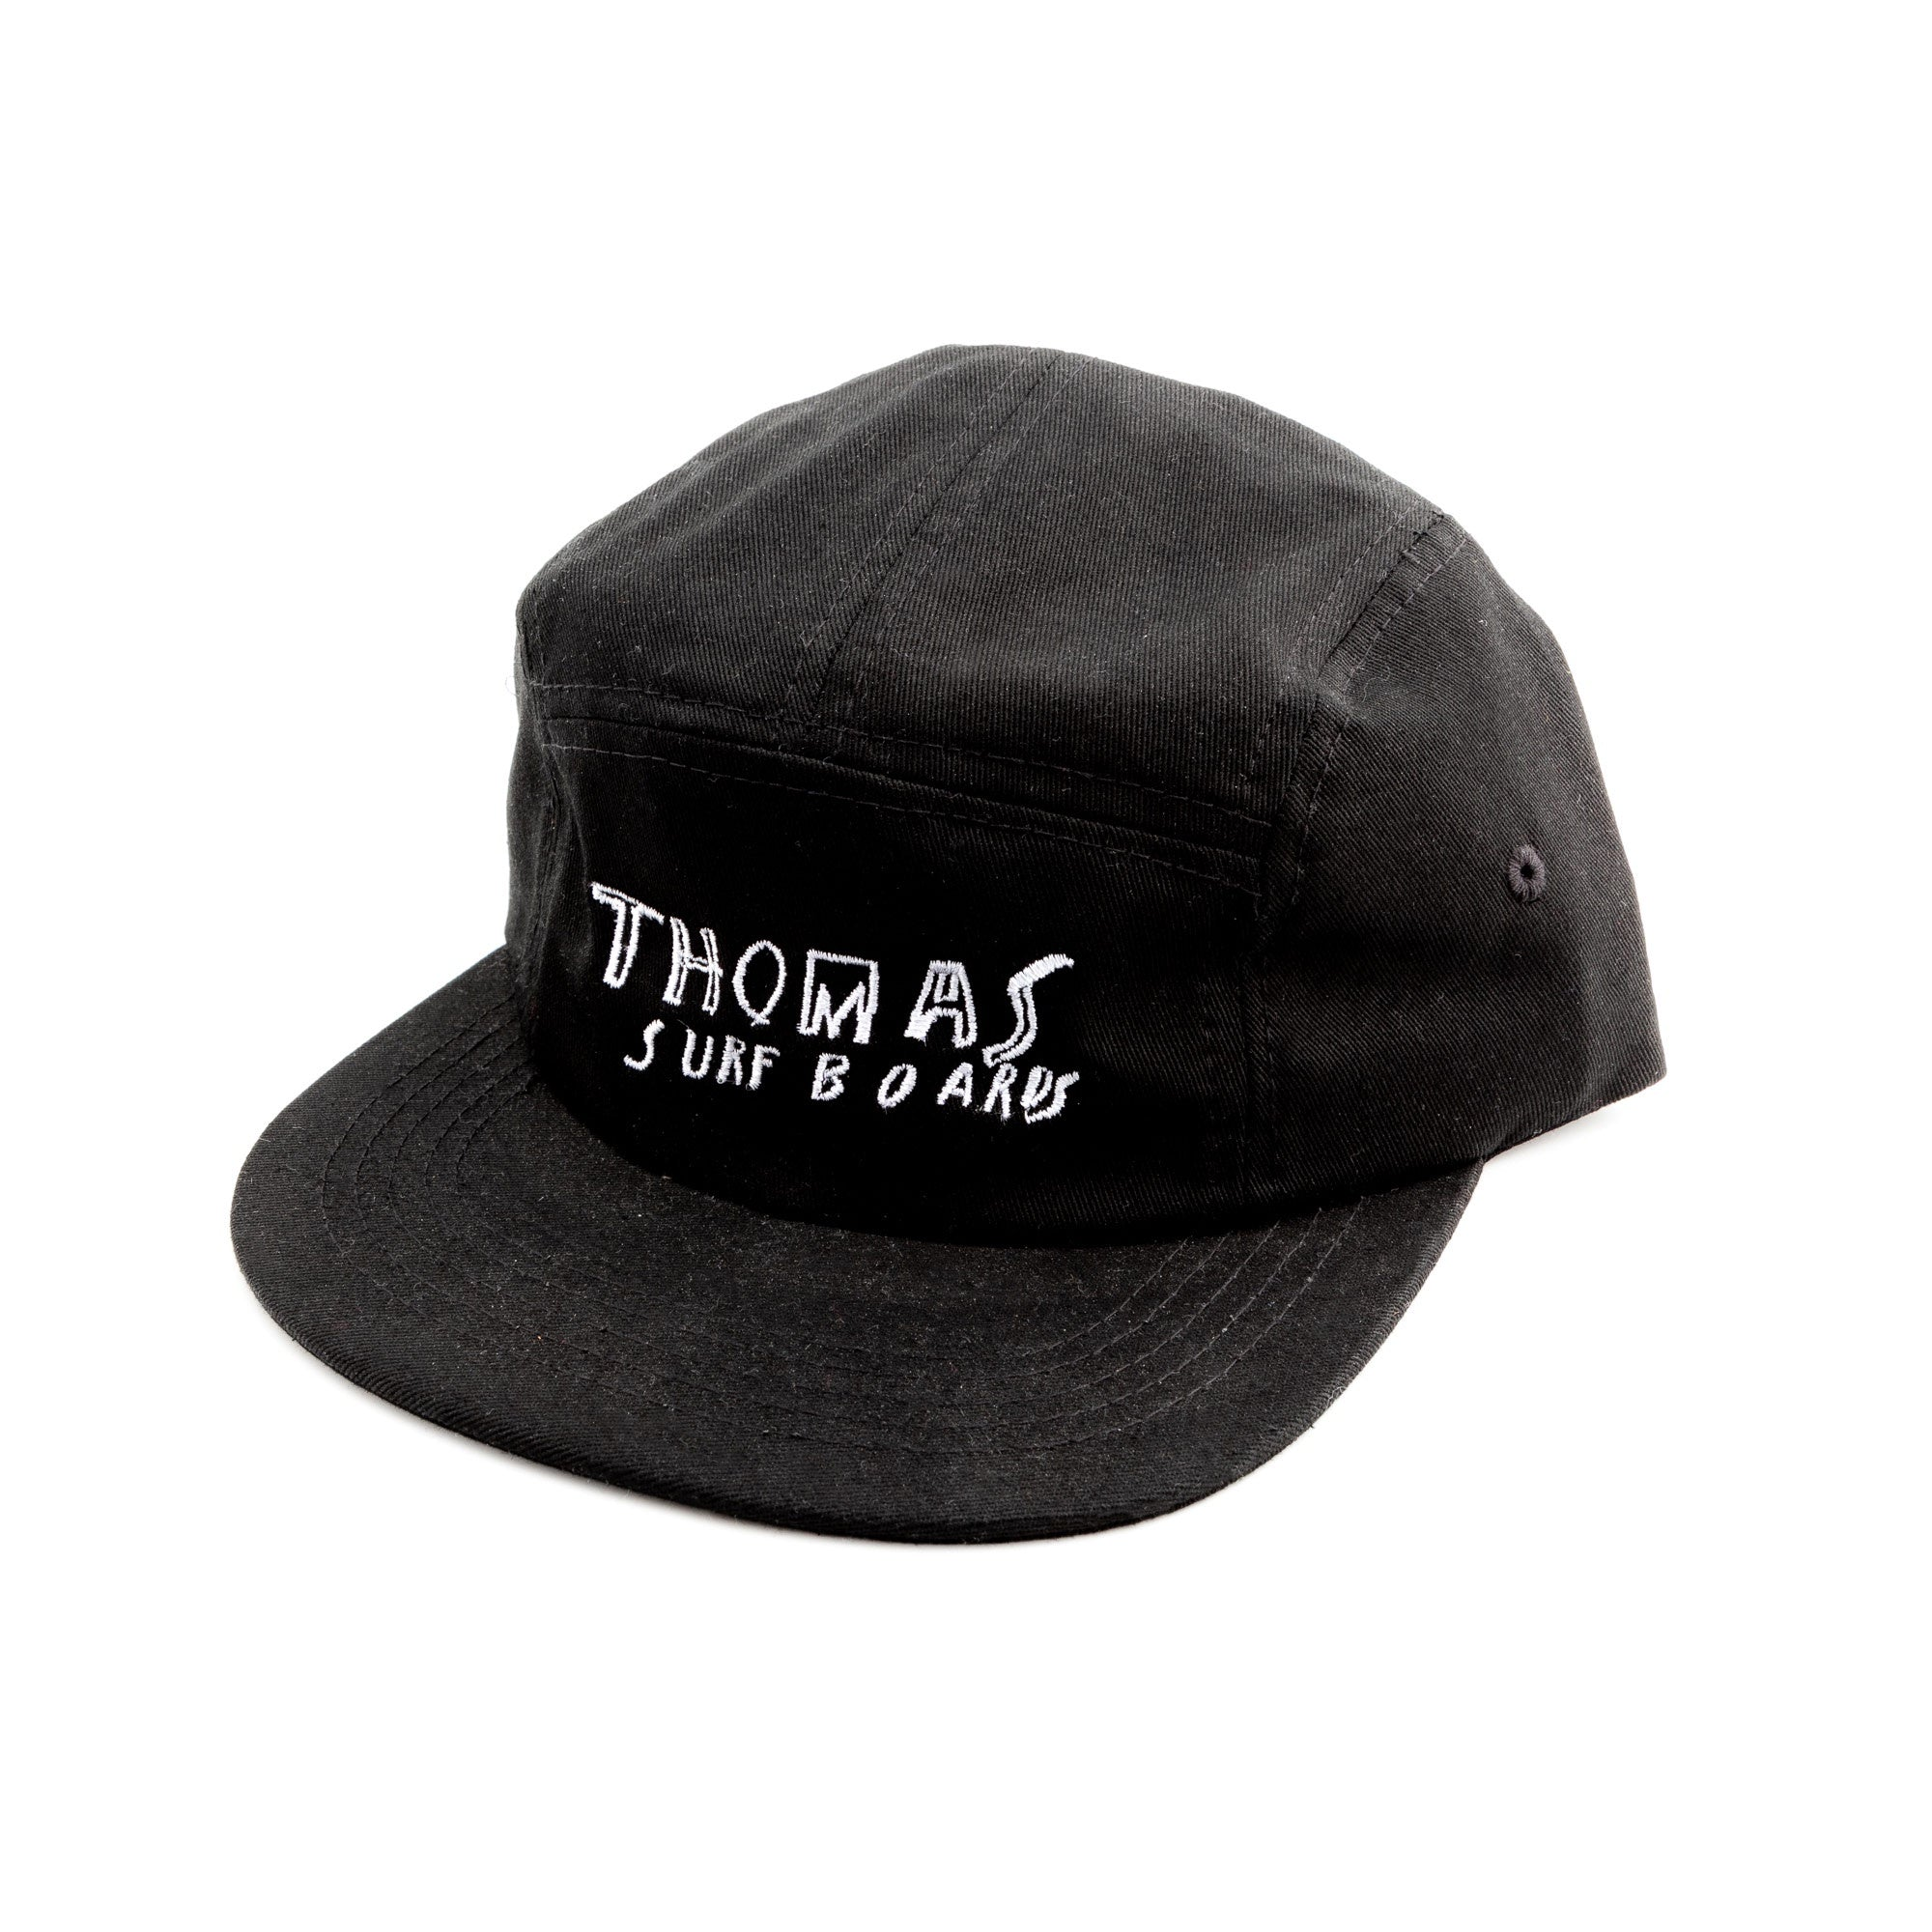 Thomas x Bob Moore Hat Black